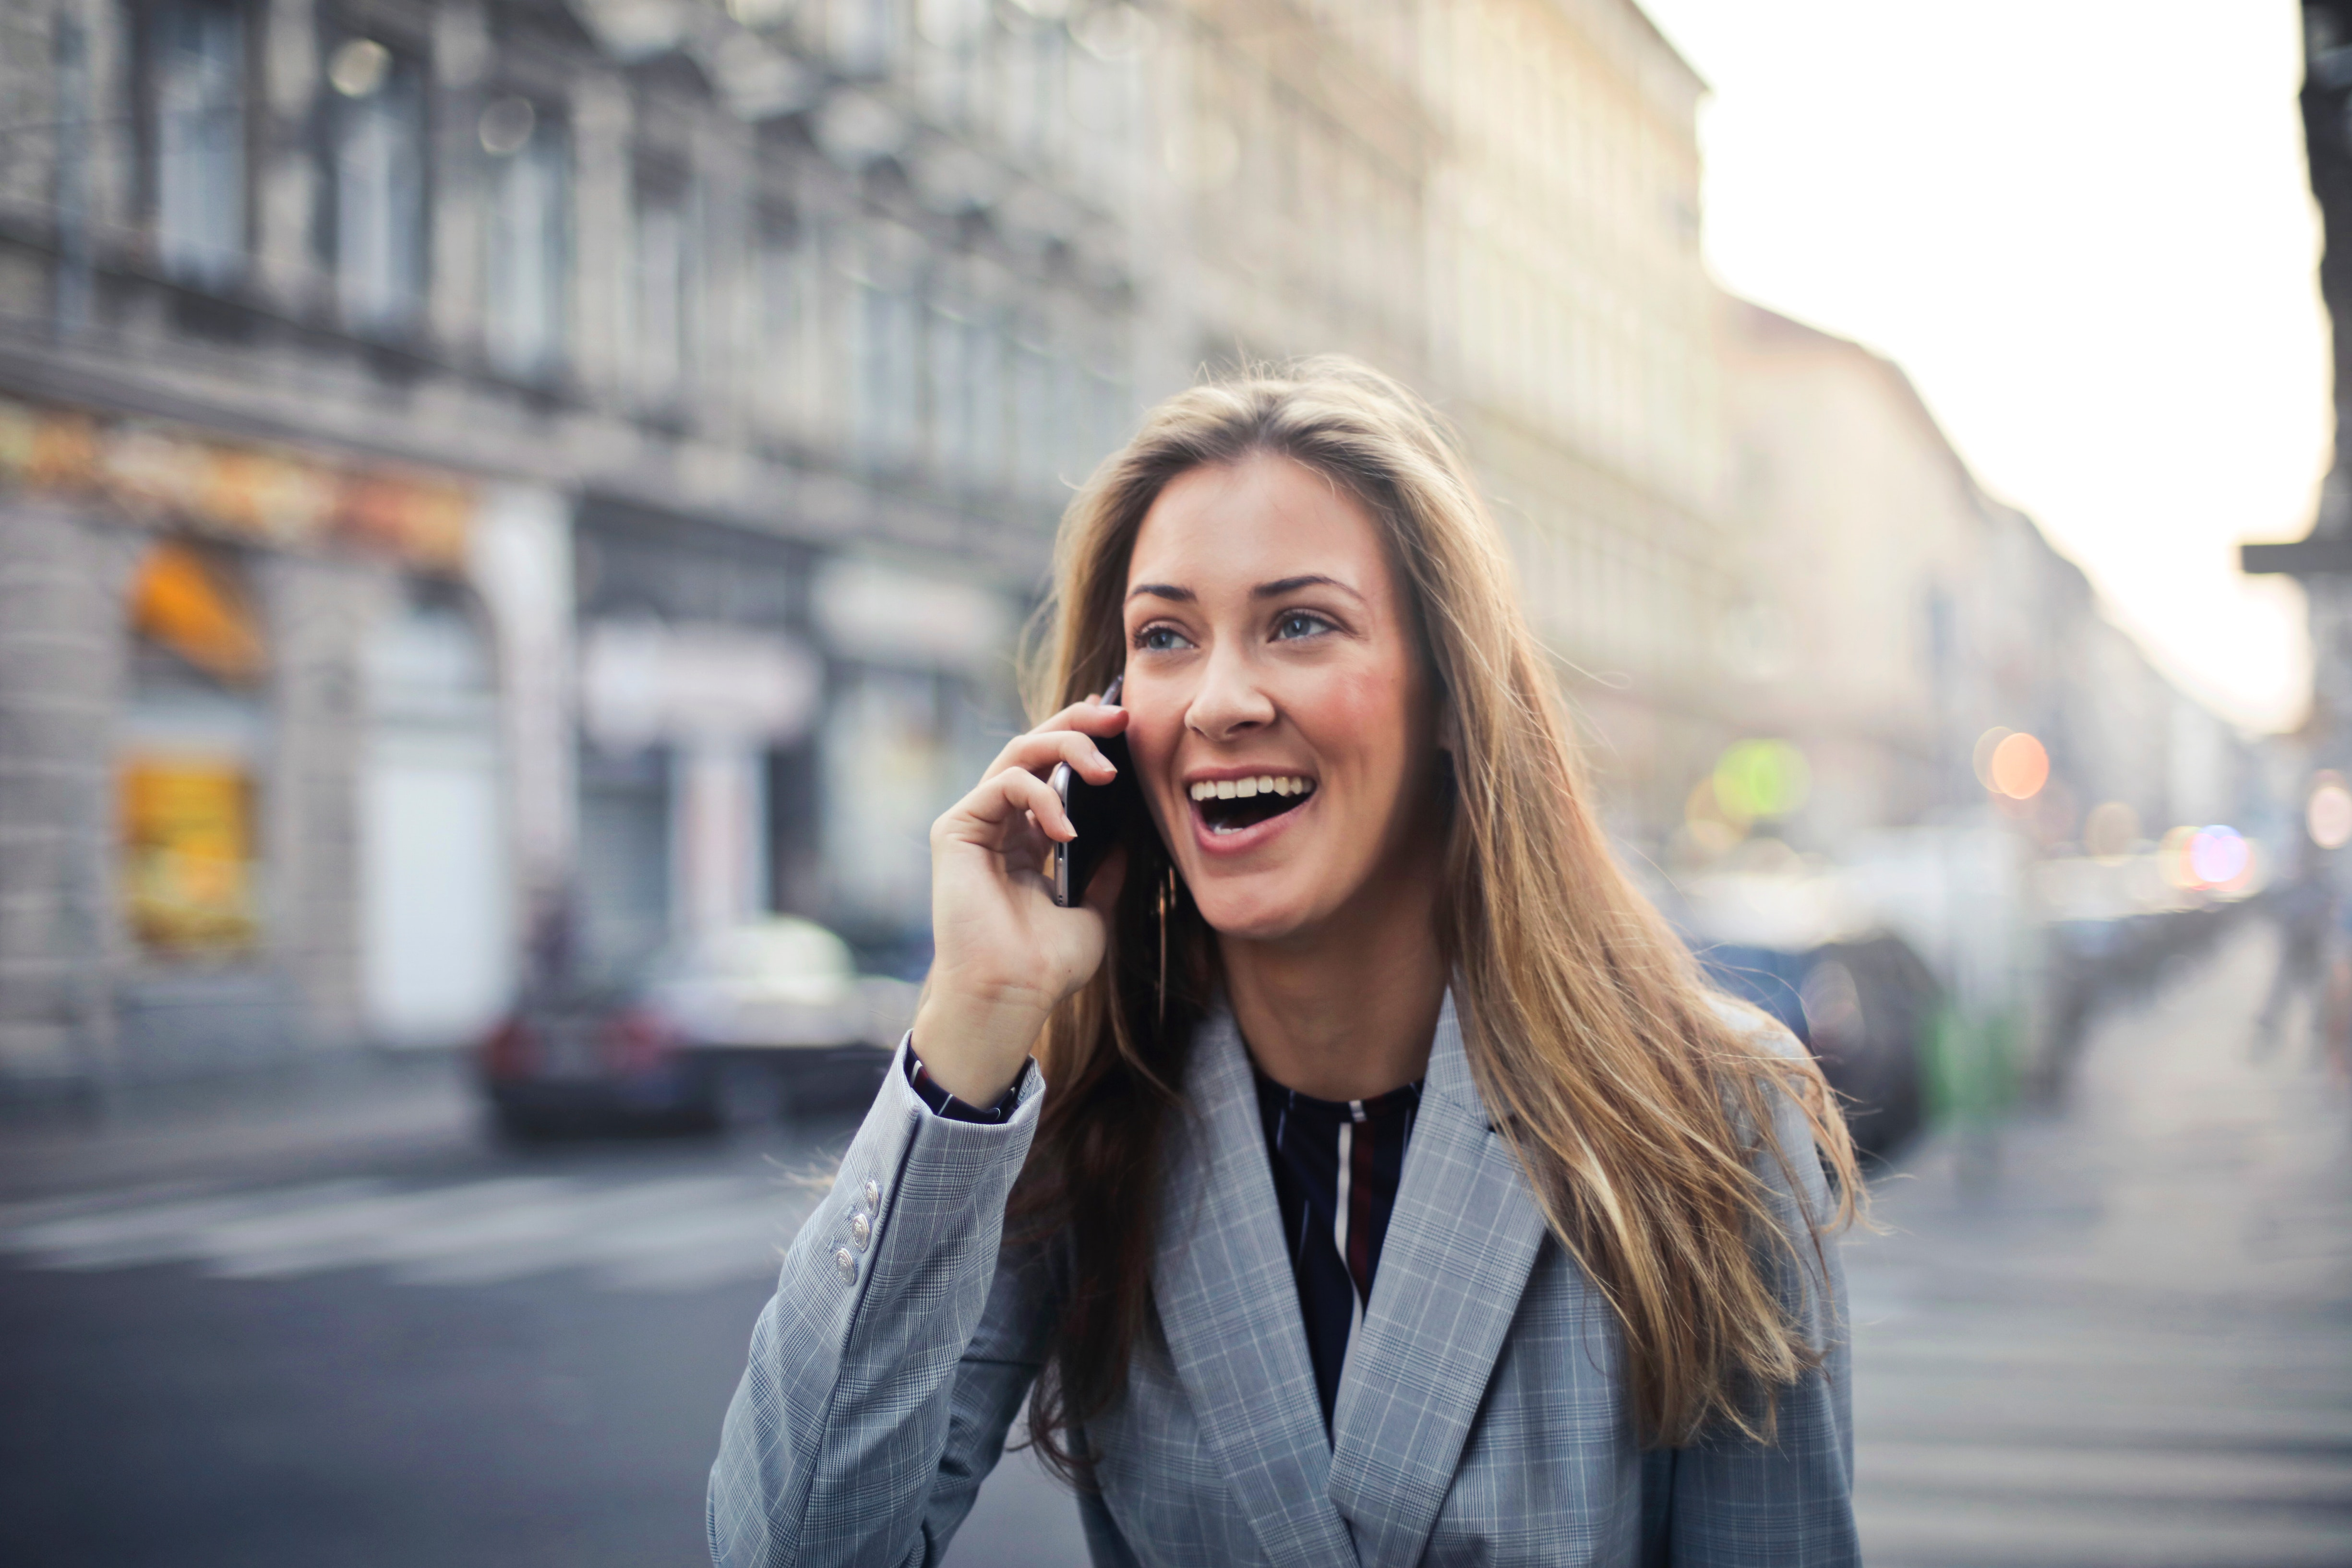 Blonde Hair Woman Wearing Gray Suit Jacket Holding Smartphone, Joy, Young, Woman, Urban, HQ Photo